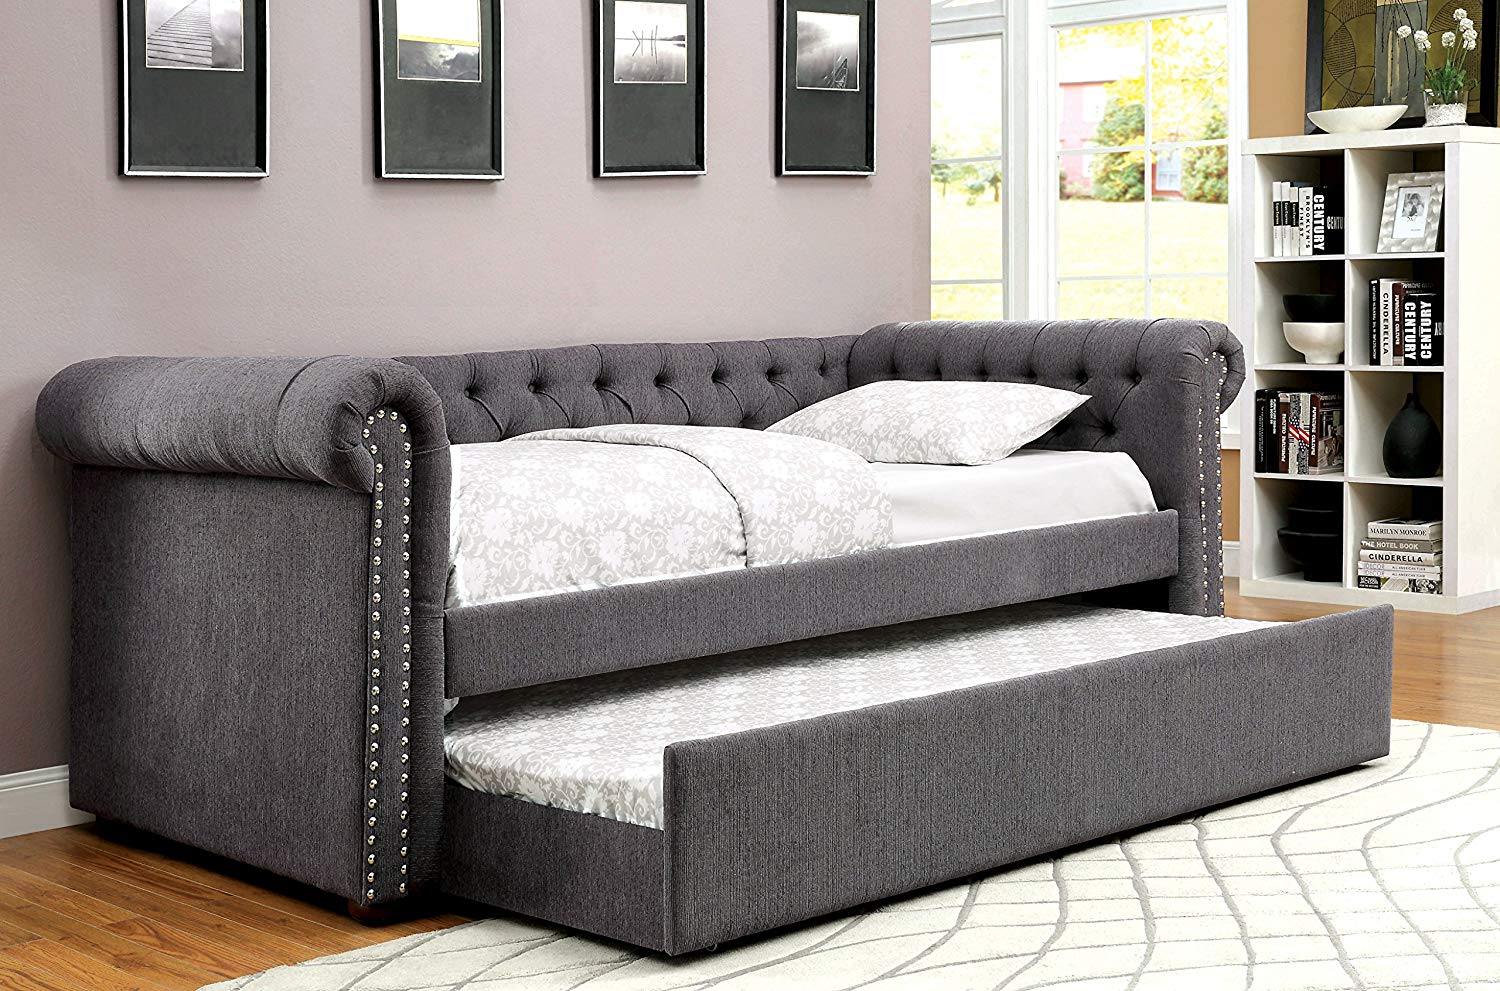 HOMES: Inside + Out IDF-1027GY-Q Hunten Daybed, Queen, Gray